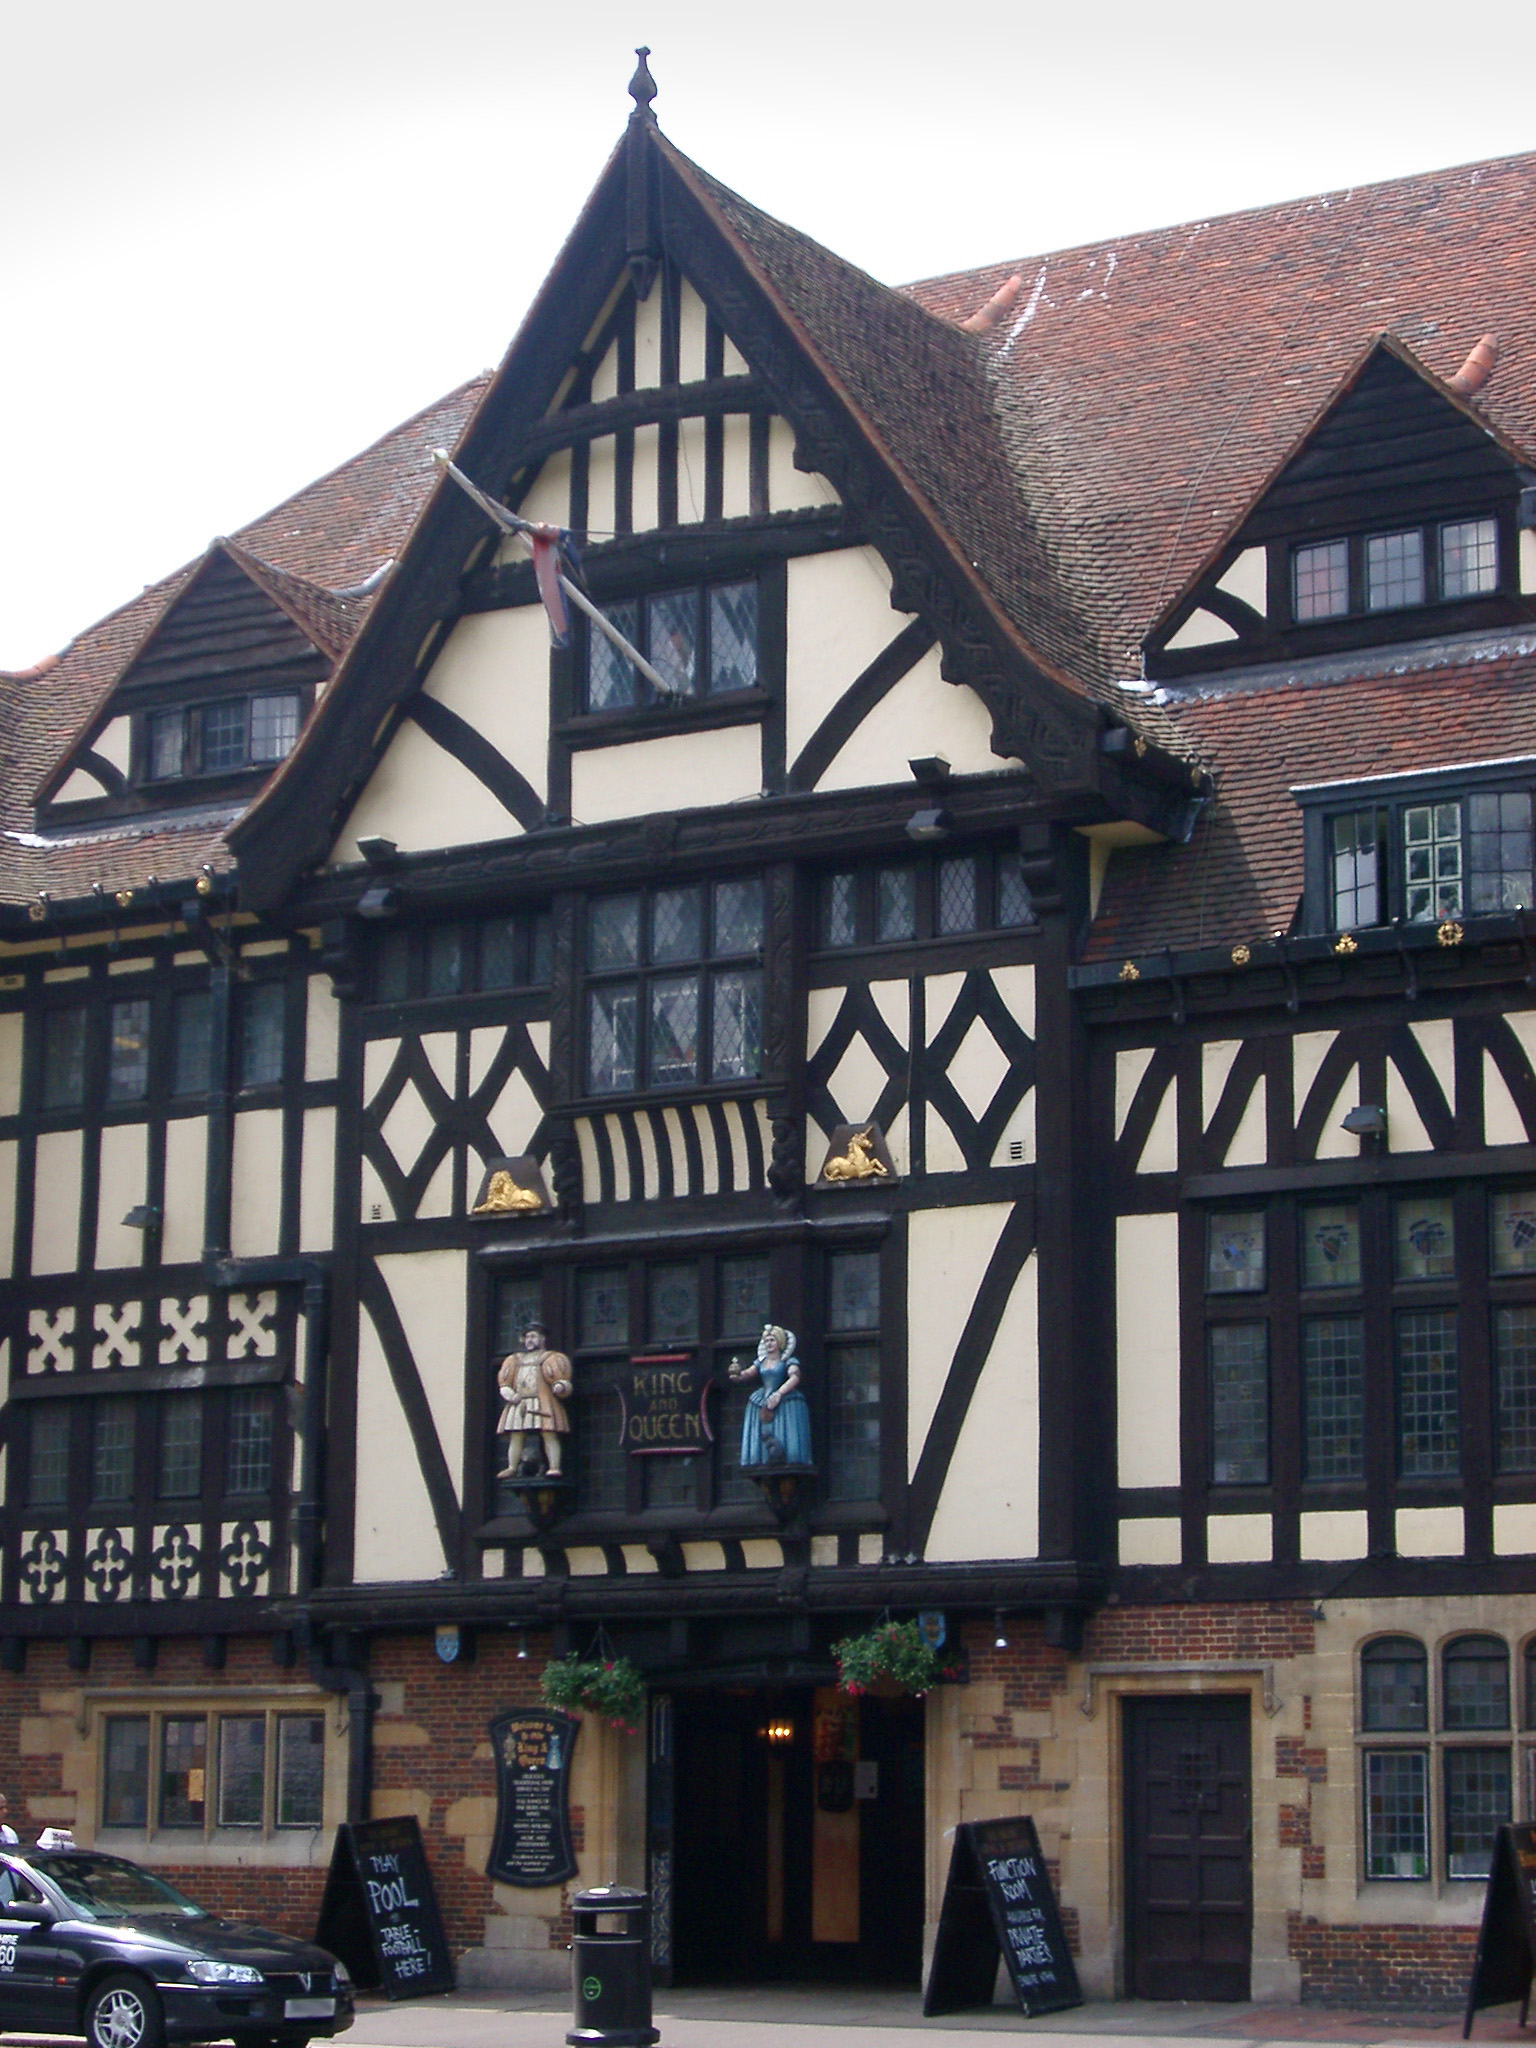 Tudor frame pub facade showing the traditional exterior timber framework on the white walls with two statues above the entrance and menus displayed in the street